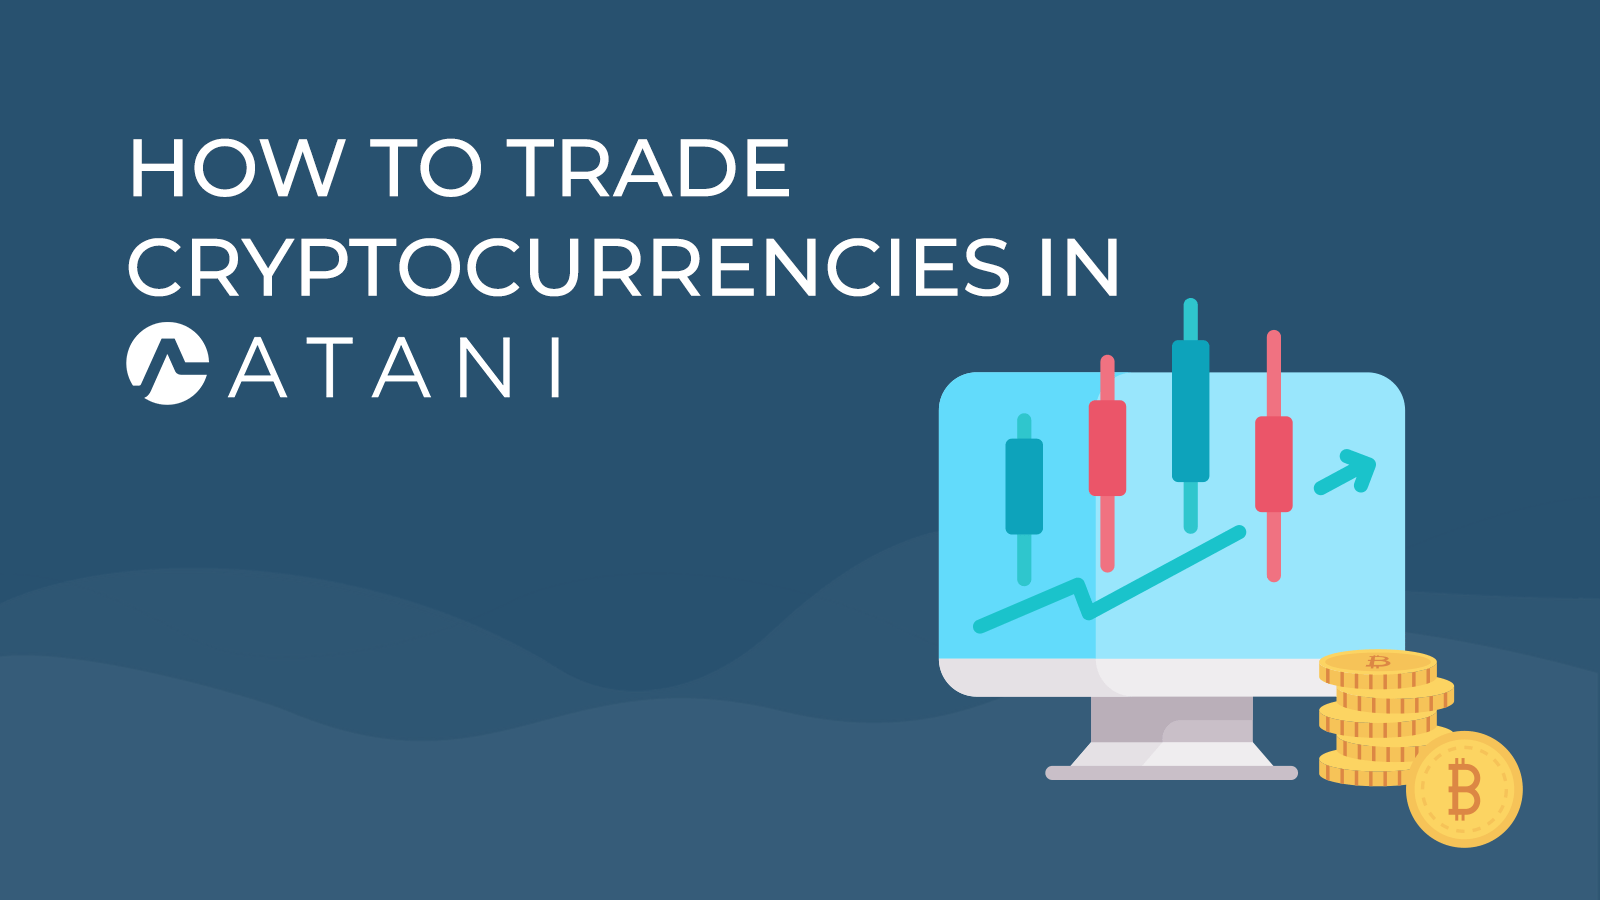 How to trade cryptocurrencies in Atani